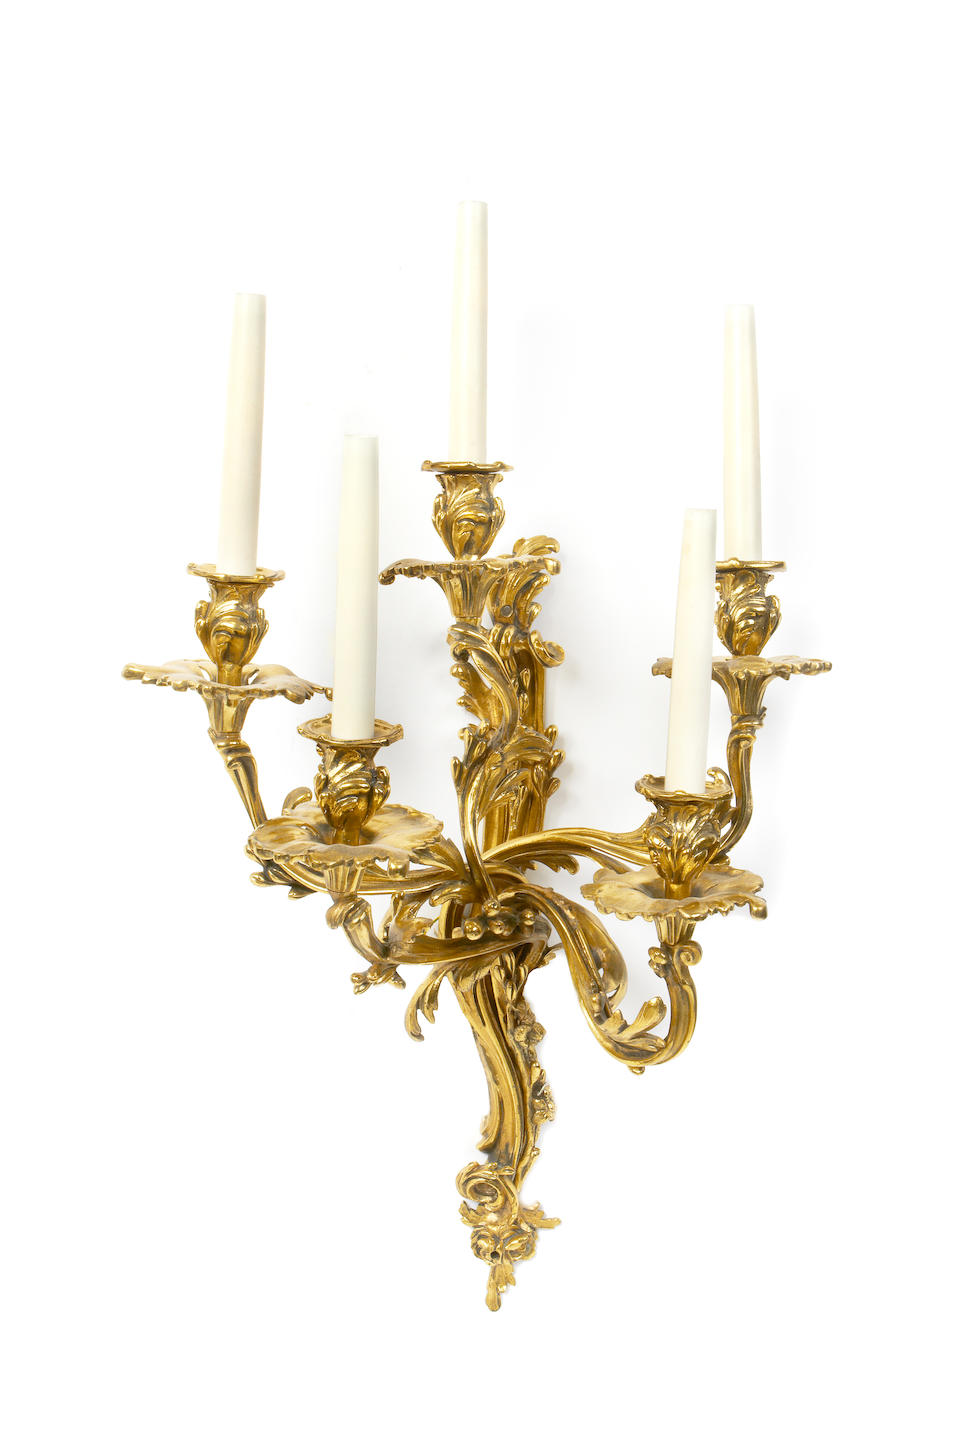 A set of four 20th century gilt brass five light wall appliquesin the Louis XV style